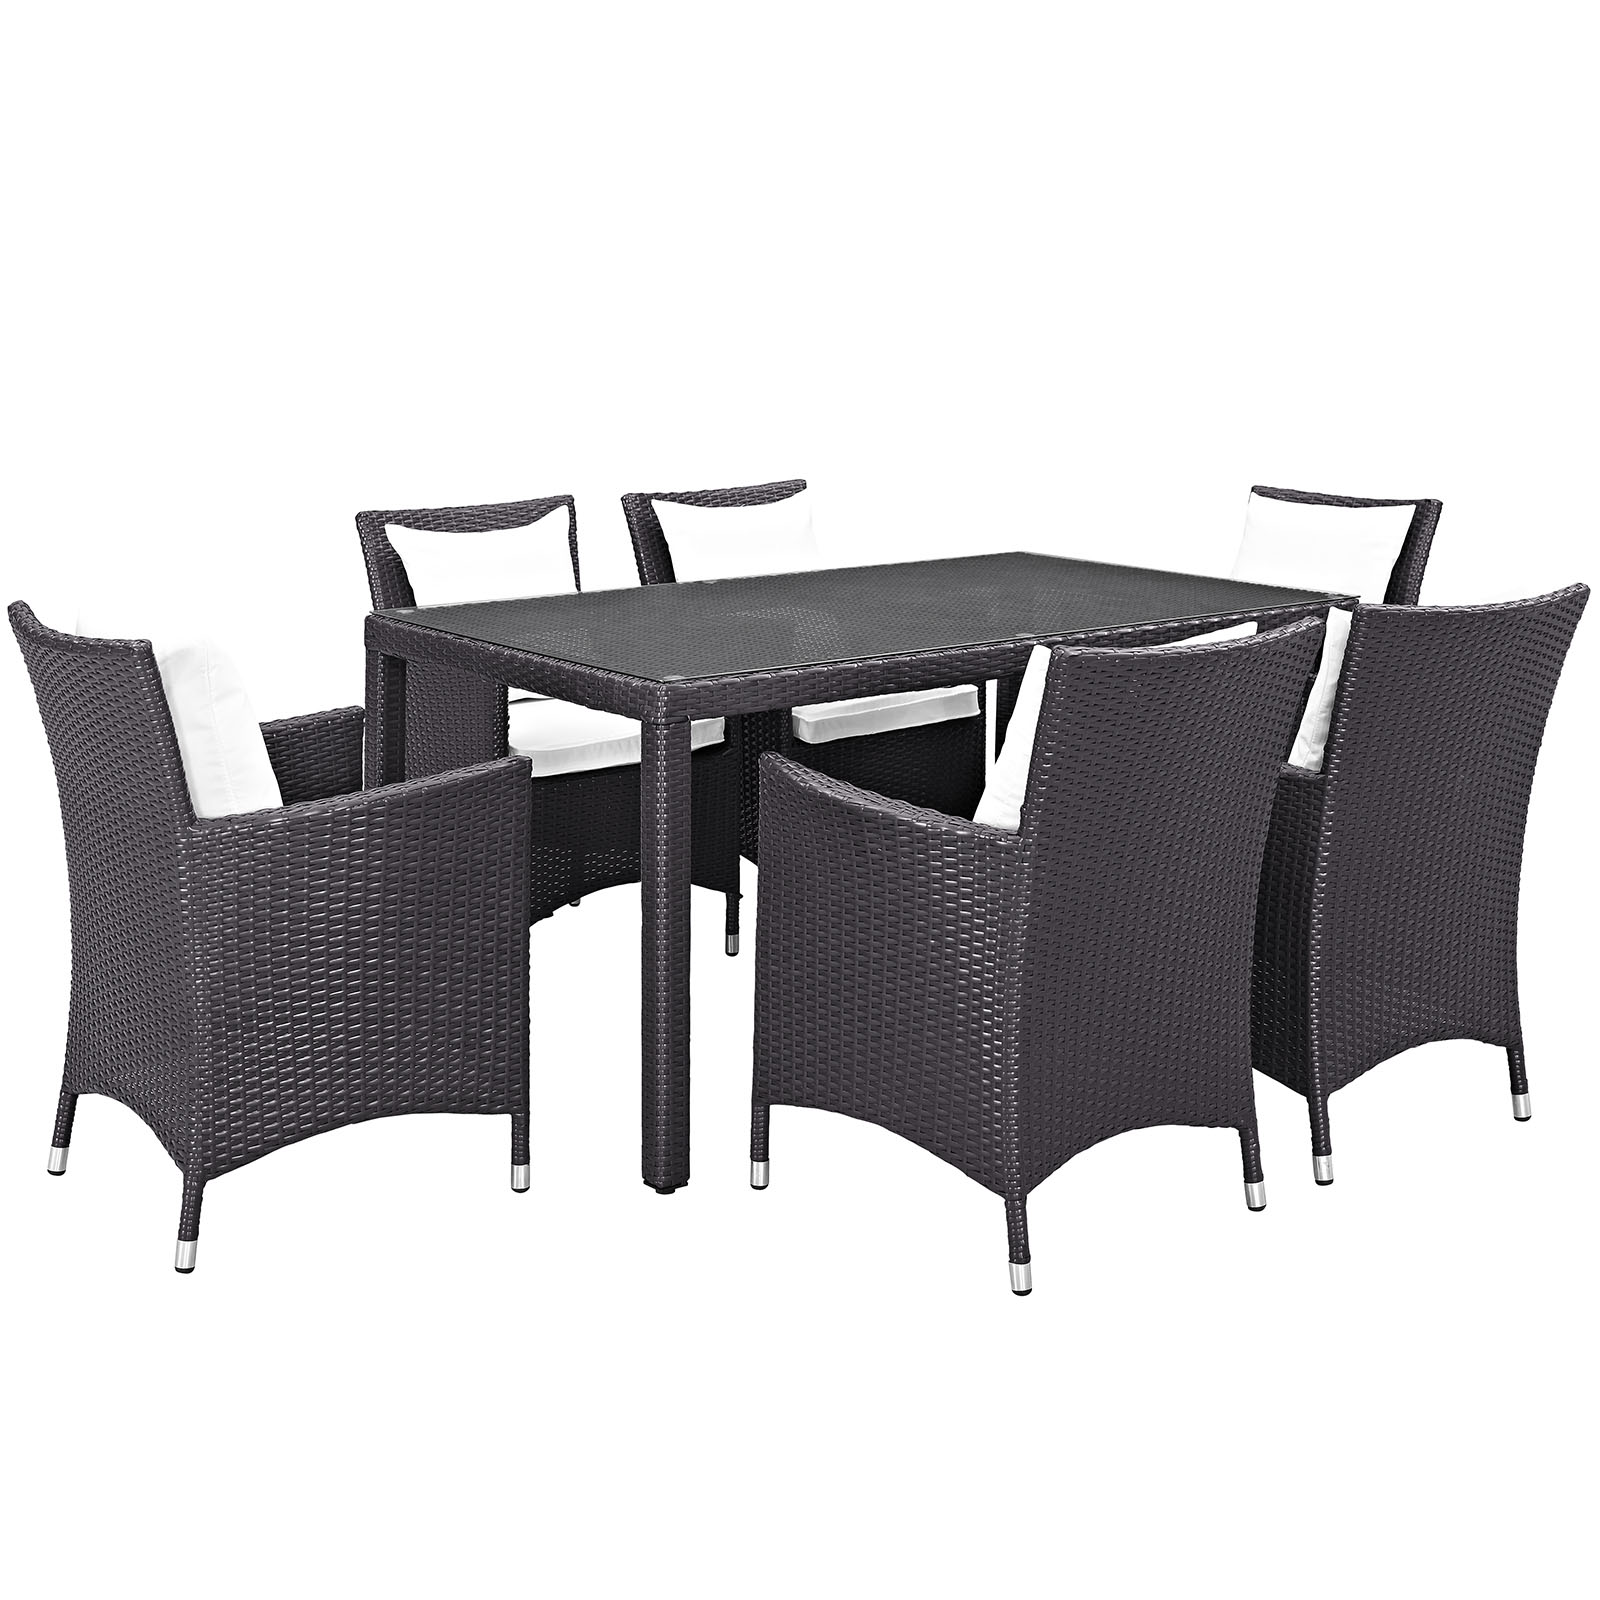 Modern Contemporary Urban Design Outdoor Patio Balcony Seven PCS Dining Chairs and Table Set, White, Rattan